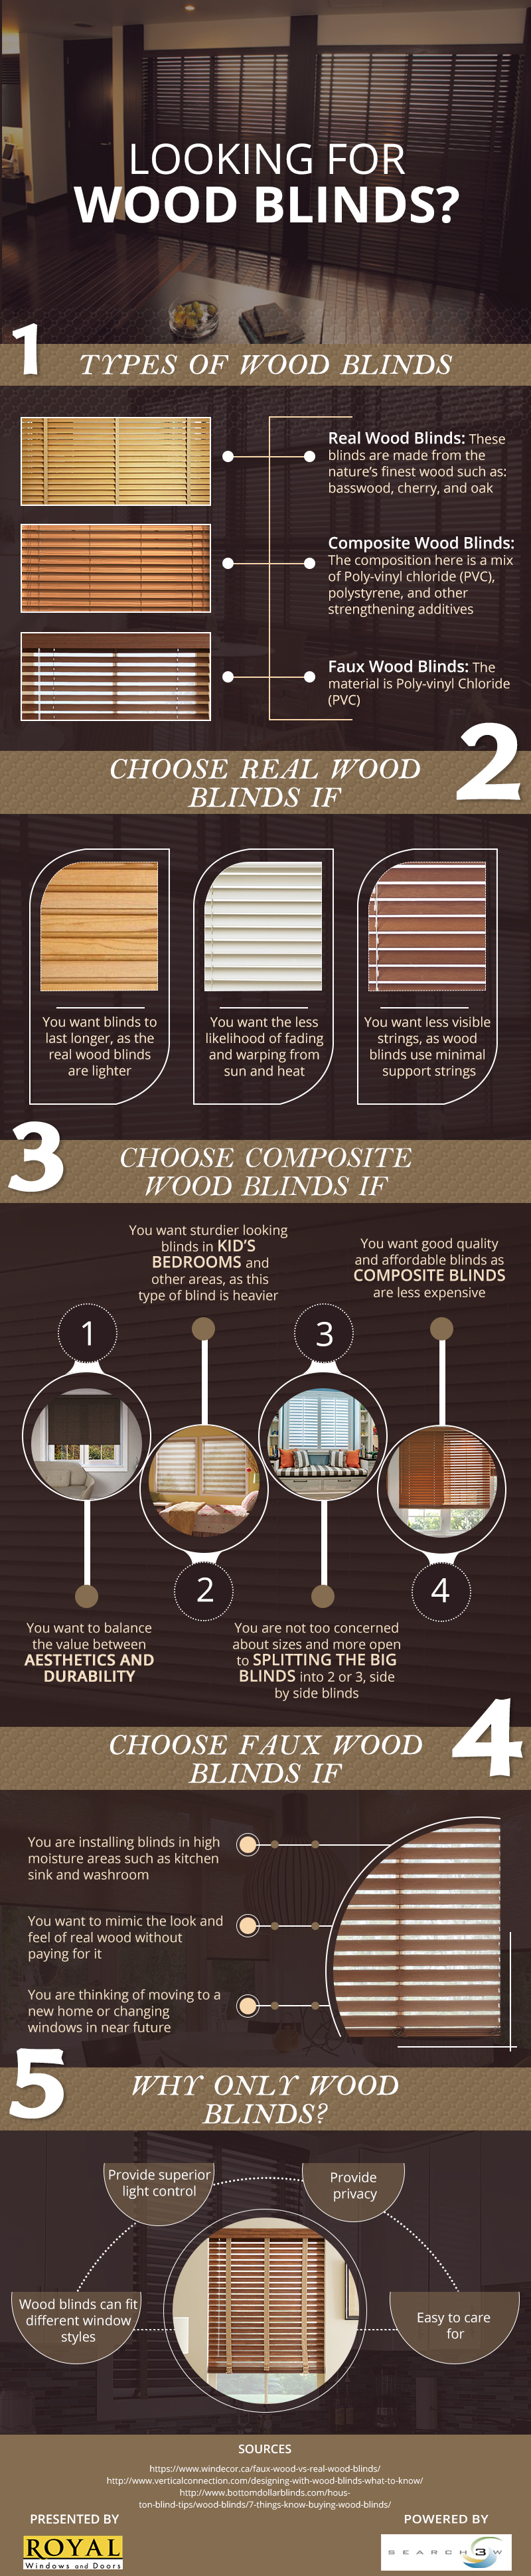 If you are thinking of moving to a new home or changing windows in near future. Checkout this infographic which provide in-depth information of wood blinds for your home. https://royalwindowtreatments.center/different-kinds-wood-blinds-home-2/